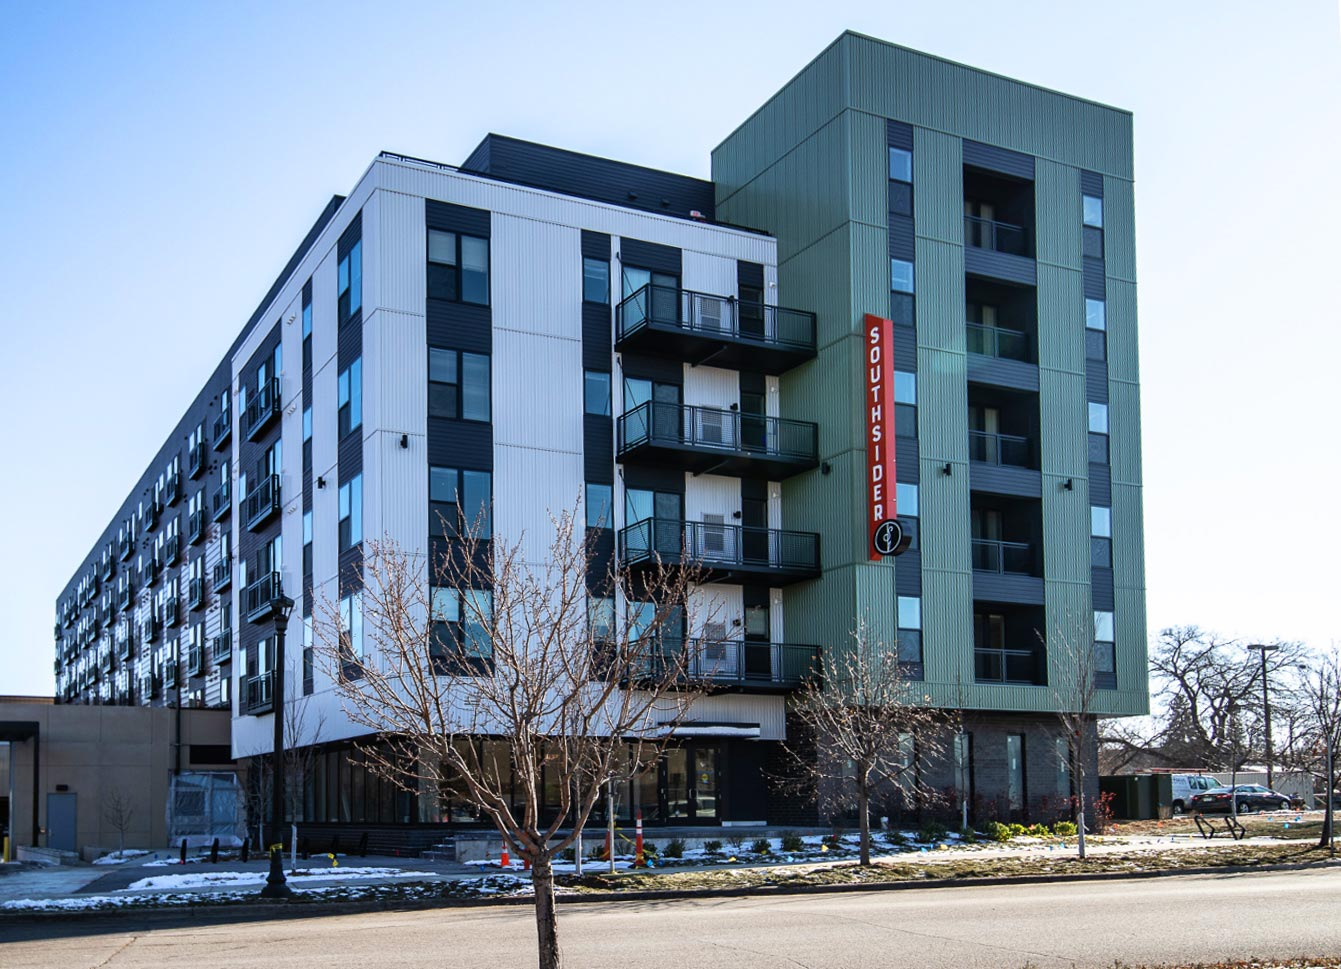 Image of Southsider Apartments in Minneapolis, Minnesota